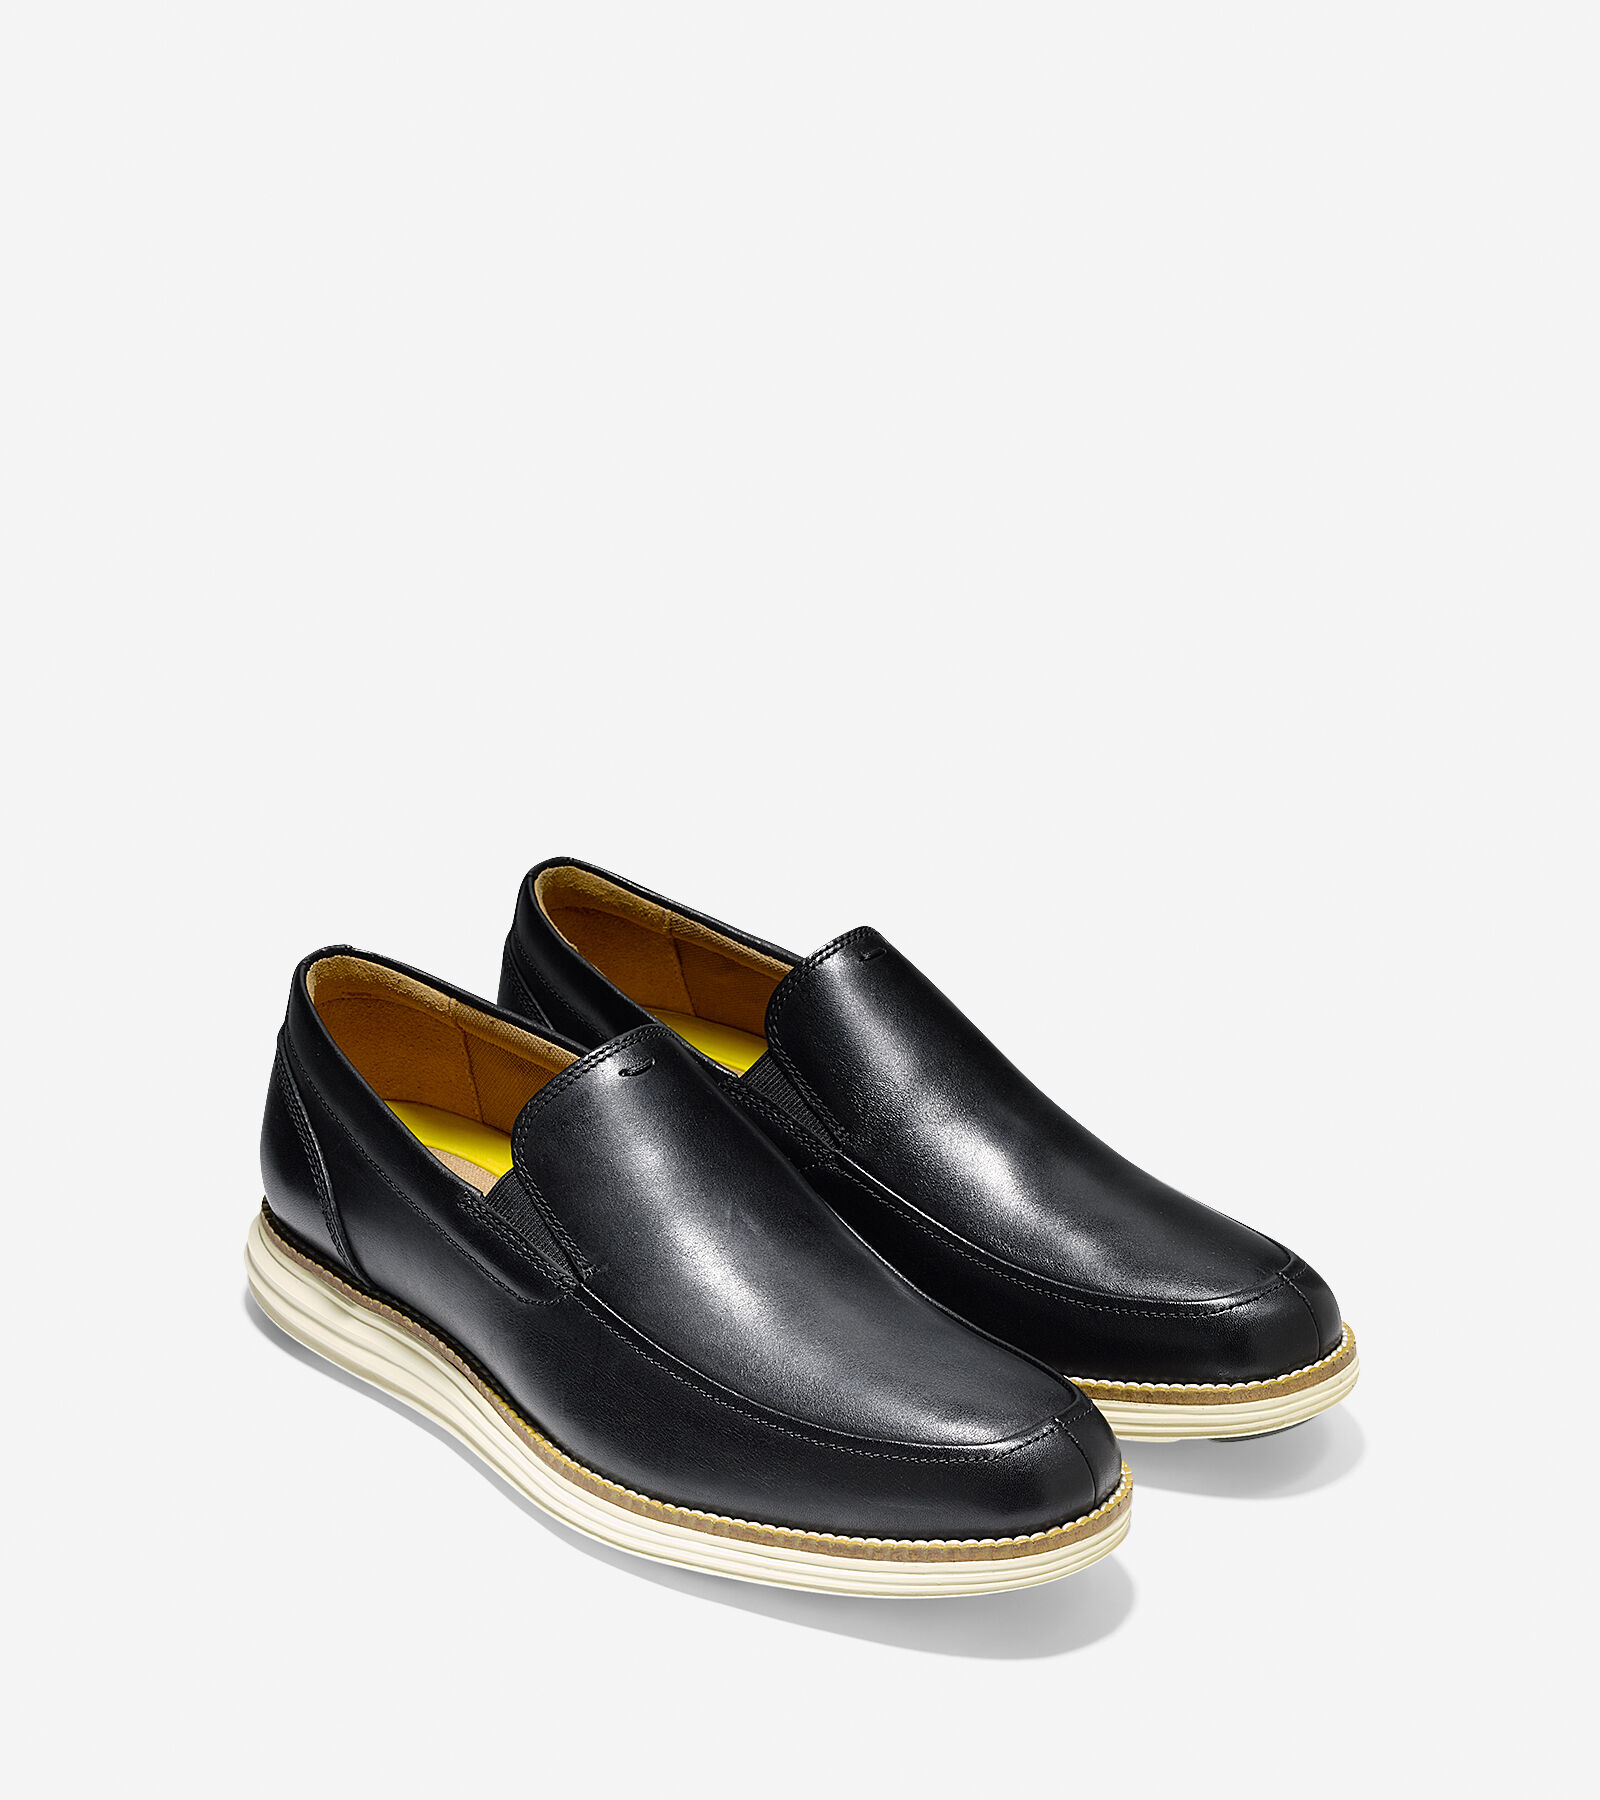 ... Men's ØriginalGrand Venetian Loafer; Men's ØriginalGrand Venetian  Loafer. #colehaan